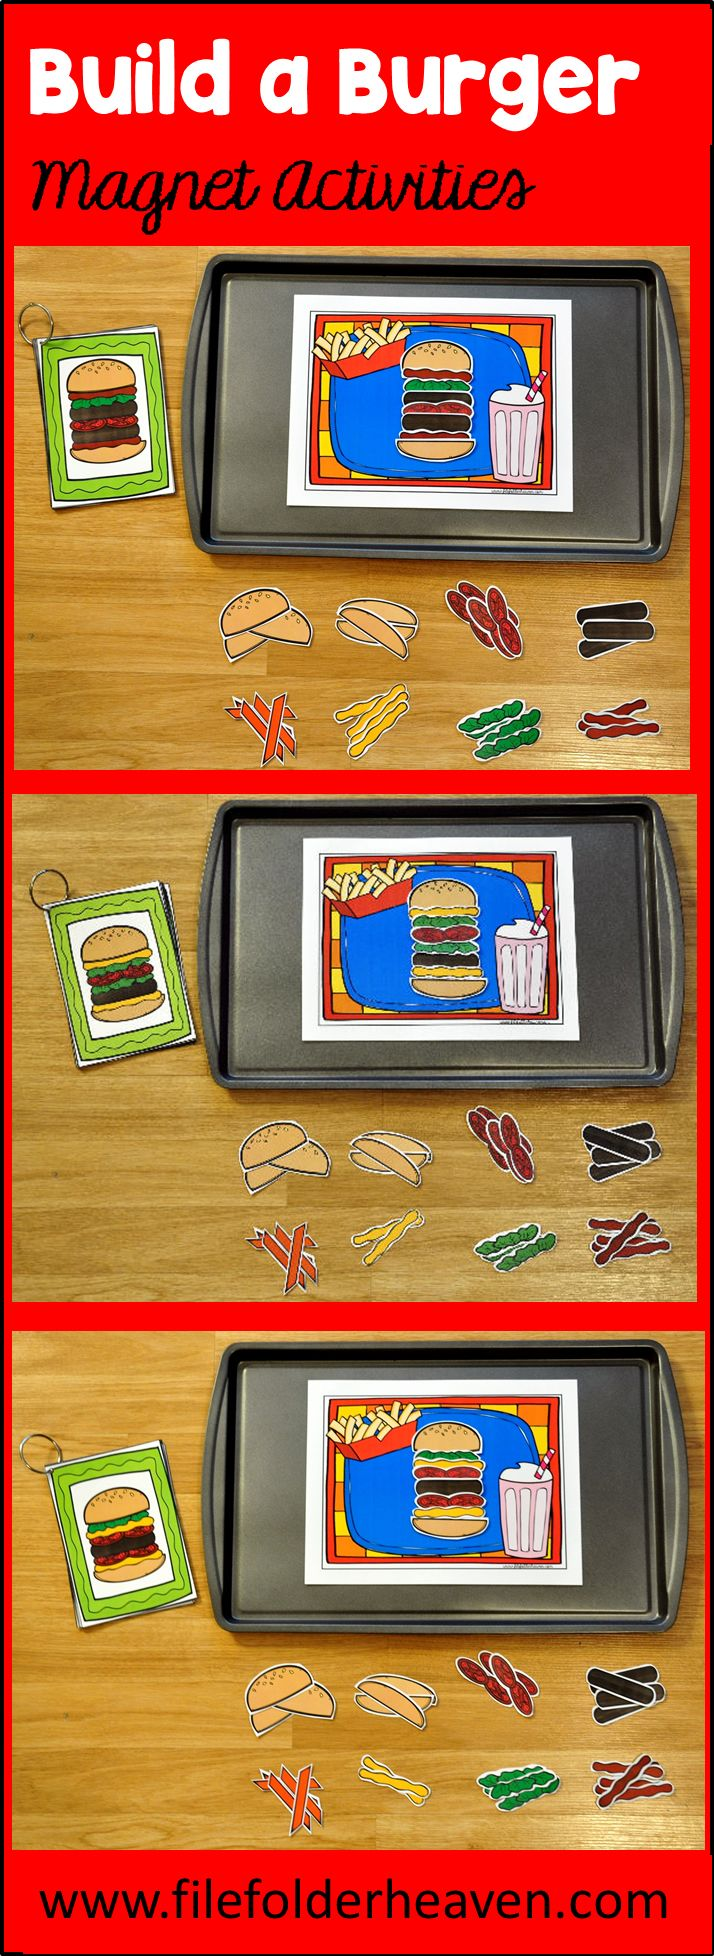 "These Build a Burger Center Activities can be set up as cookie sheet activities, a magnet center or completed as cut and glue activities. This activity includes: 1 background, 12 build a burger example cards, and a big set of ""build a burger"" building pieces for creative building (all in color). In this activity, students work on visual discrimination skills, recognizing same and different, and replicating a model."